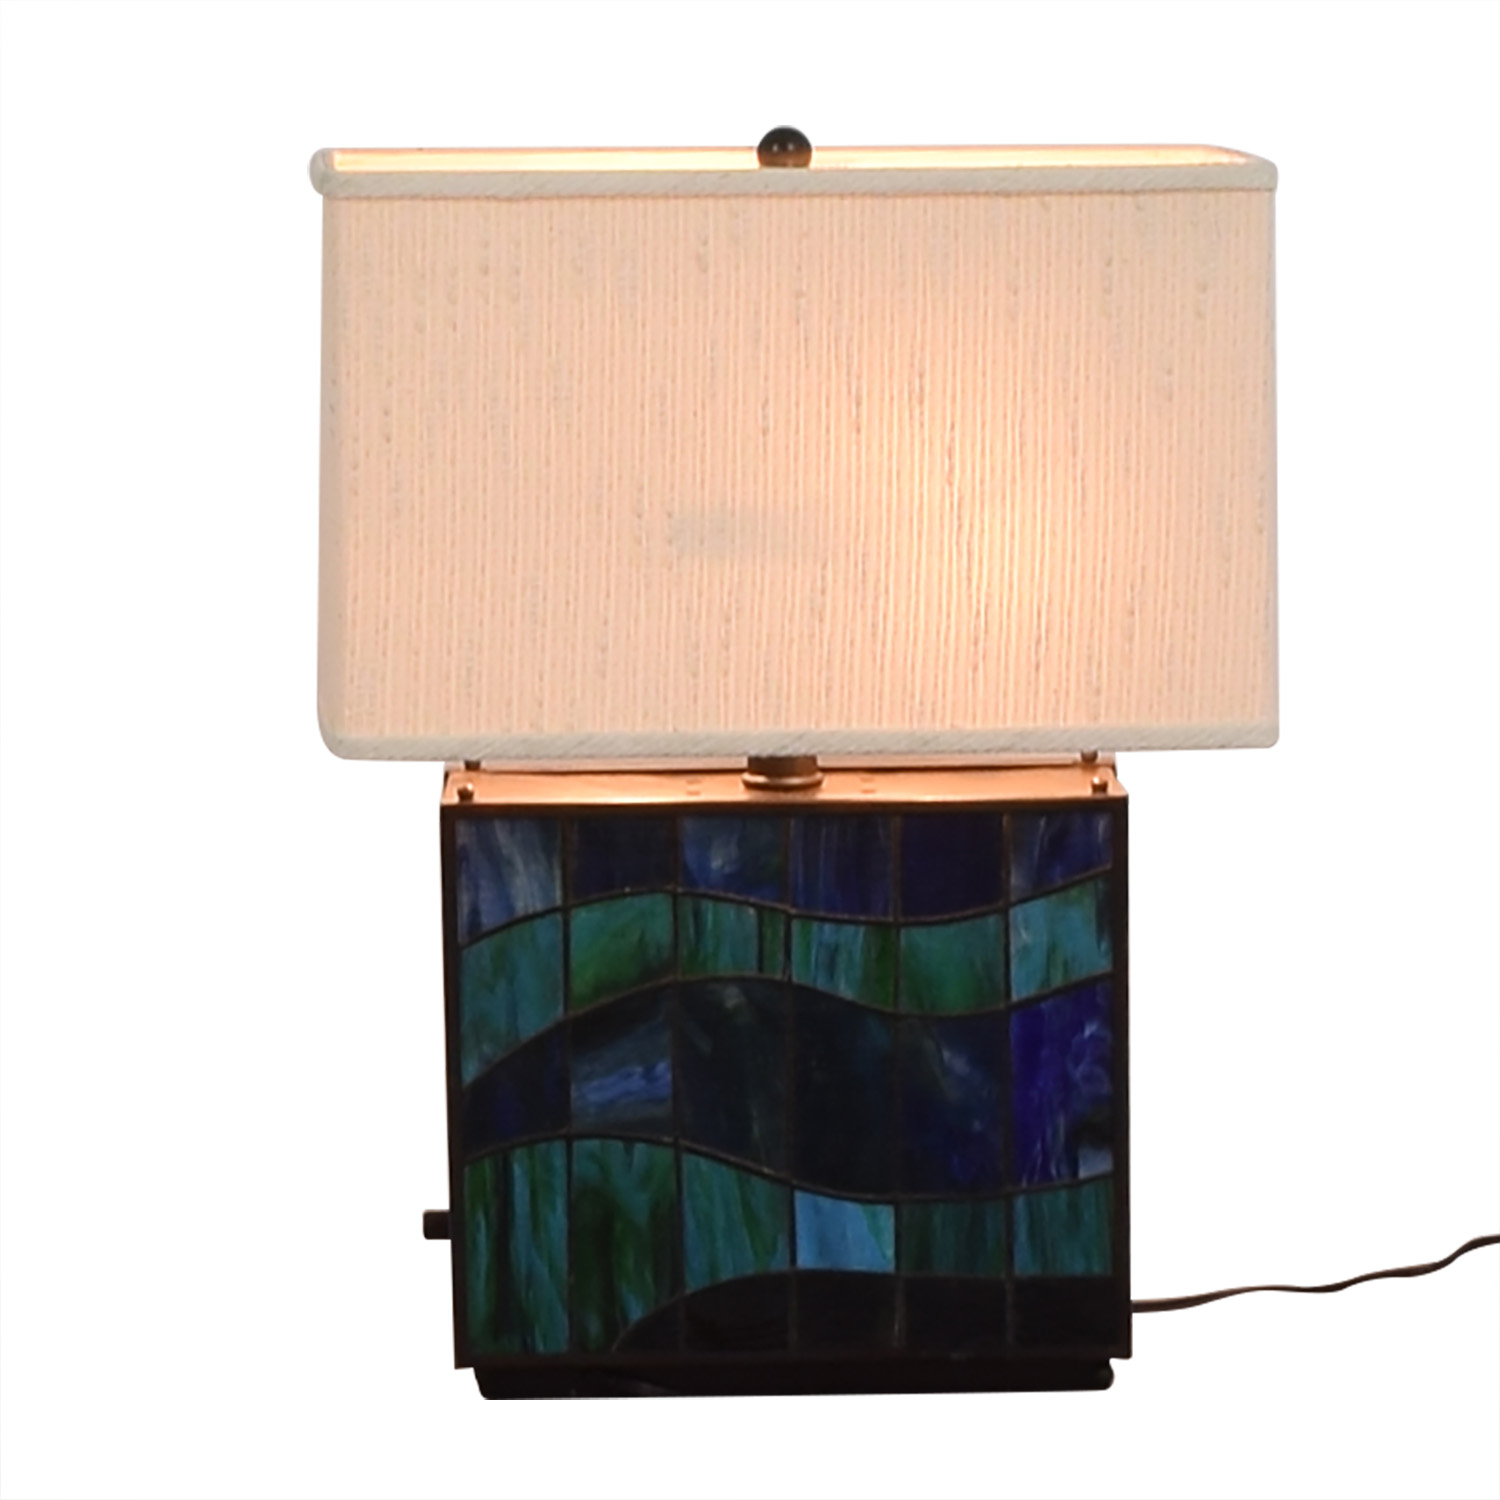 Quoizel Quoizel Blue Stained Glass Lamp price